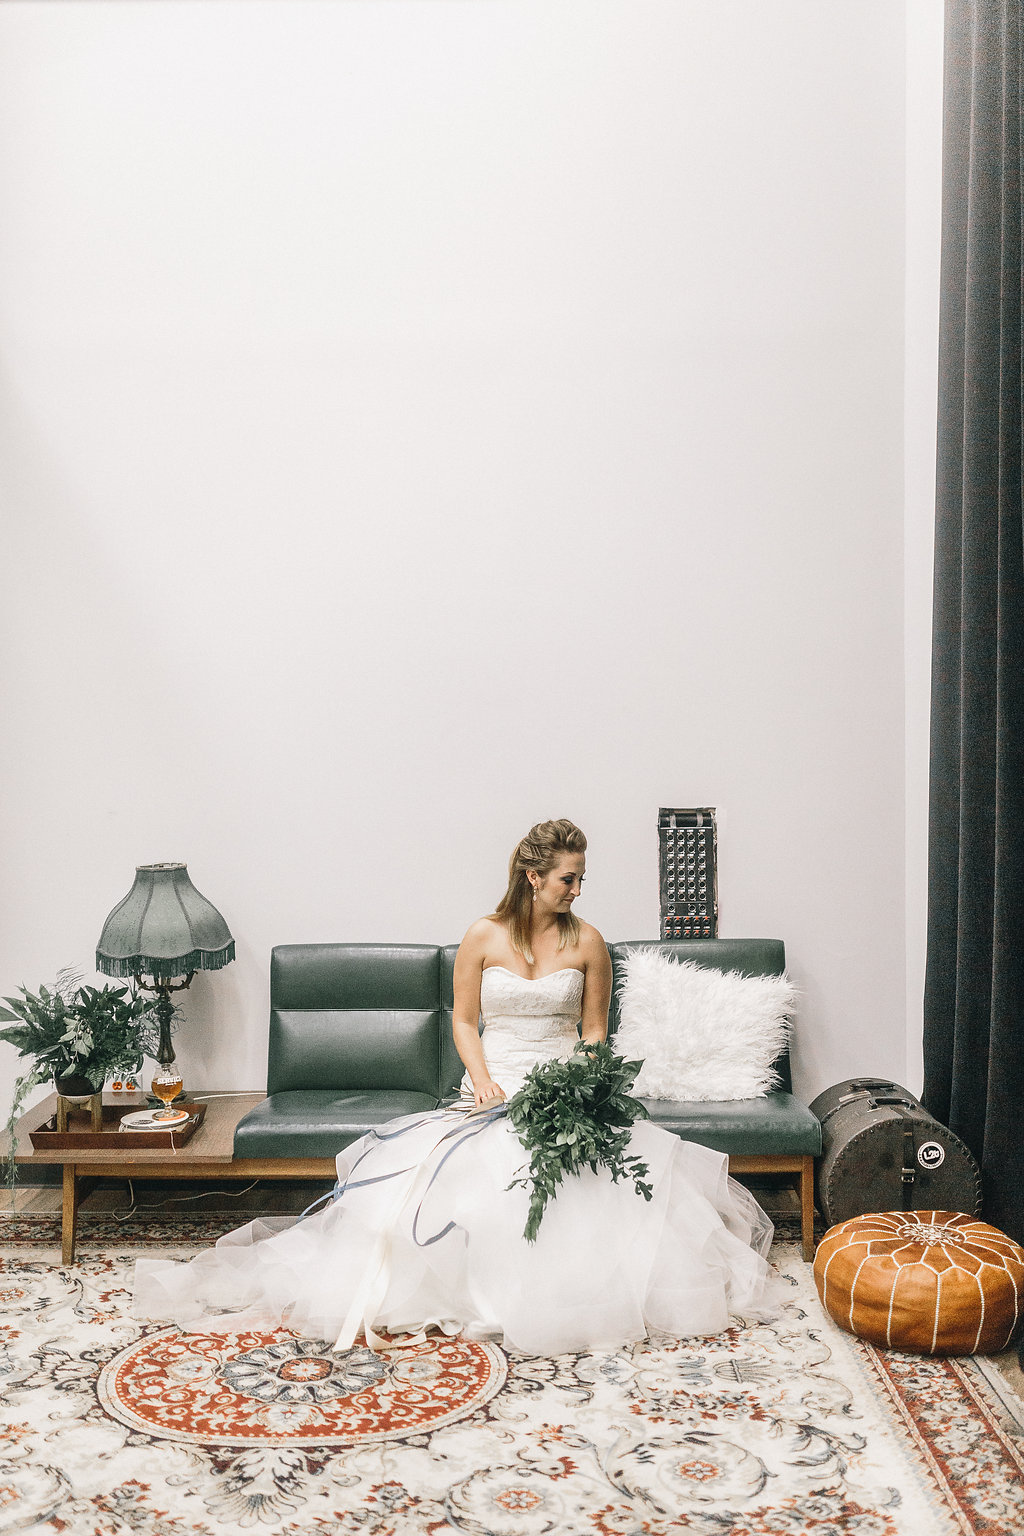 Stairway-to-Matrimony-mackensey-alexander-the-garage-savannah-ivory-and-beau-bridal-boutique-azi-blush-by-hayley-paige-indie-wedding-music-wedding-recording-studio-wedding-savannah-wedding-planner-savannah-florist-savannah-bridal-gowns-9.jpg